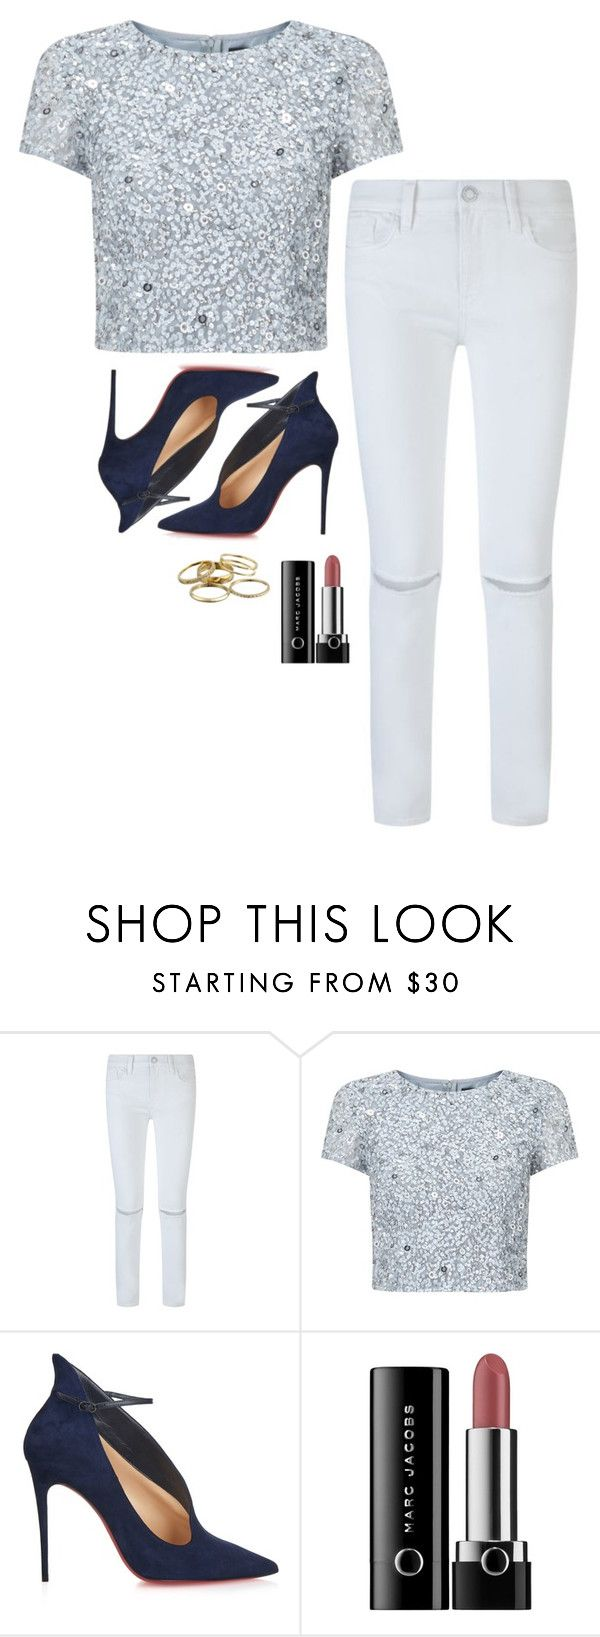 """""""Selena Gomez Inspired Outfit"""" by daniellakresovic ❤ liked on Polyvore featuring Rebecca Minkoff, Adrianna Papell, Christian Louboutin, Marc and Kendra Scott"""